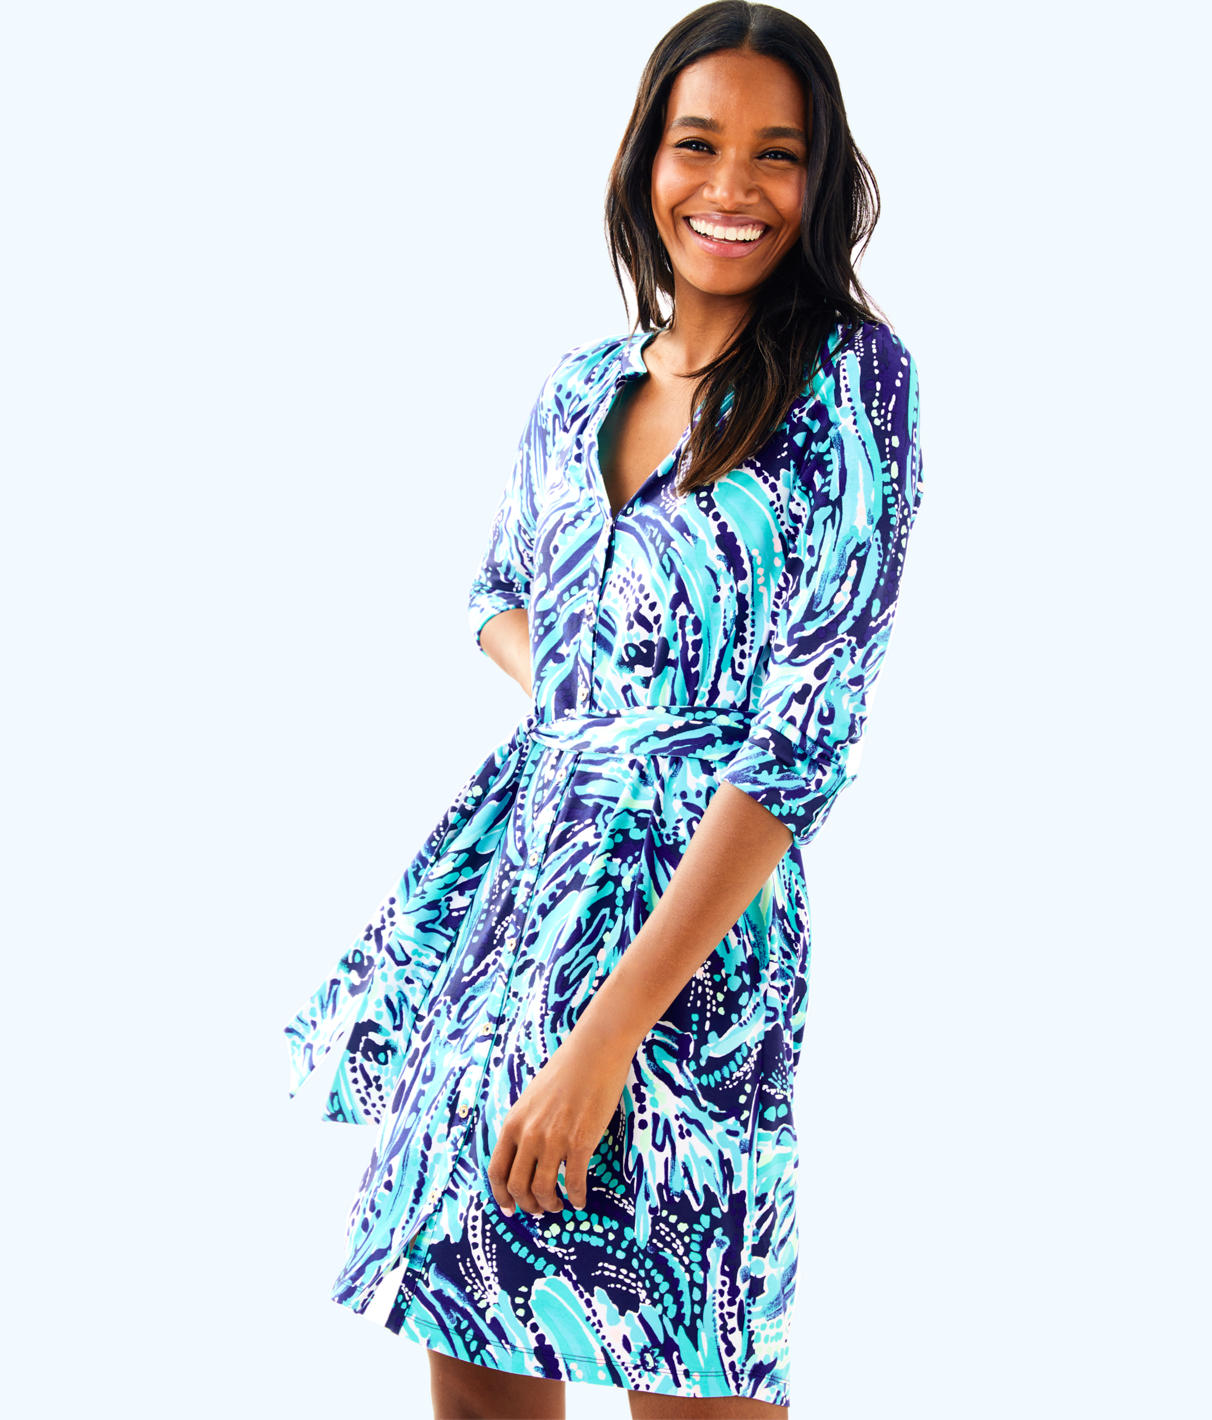 Lilly Pulitzer Lilly Pulitzer Womens Bailor Dress